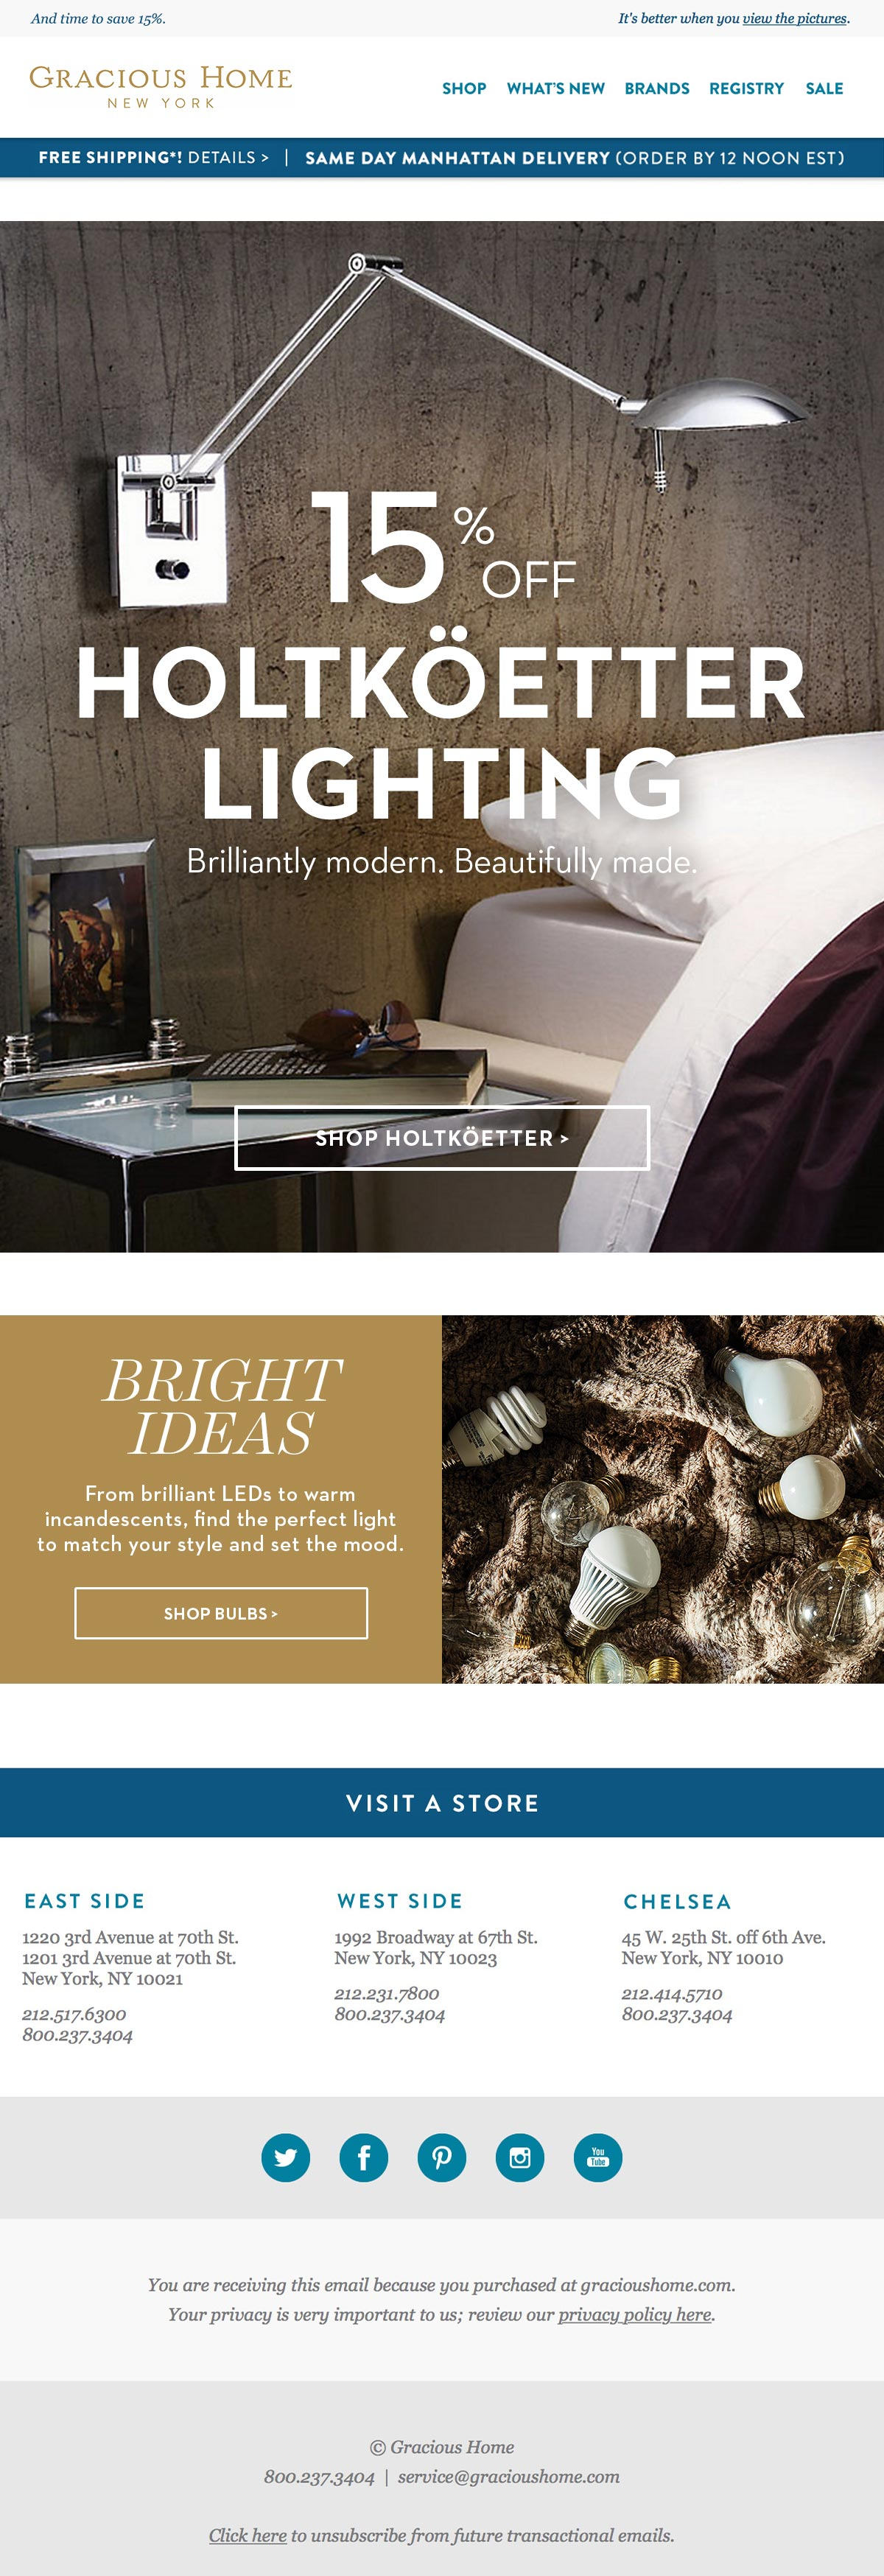 Gracious Home - Holtkoetter email